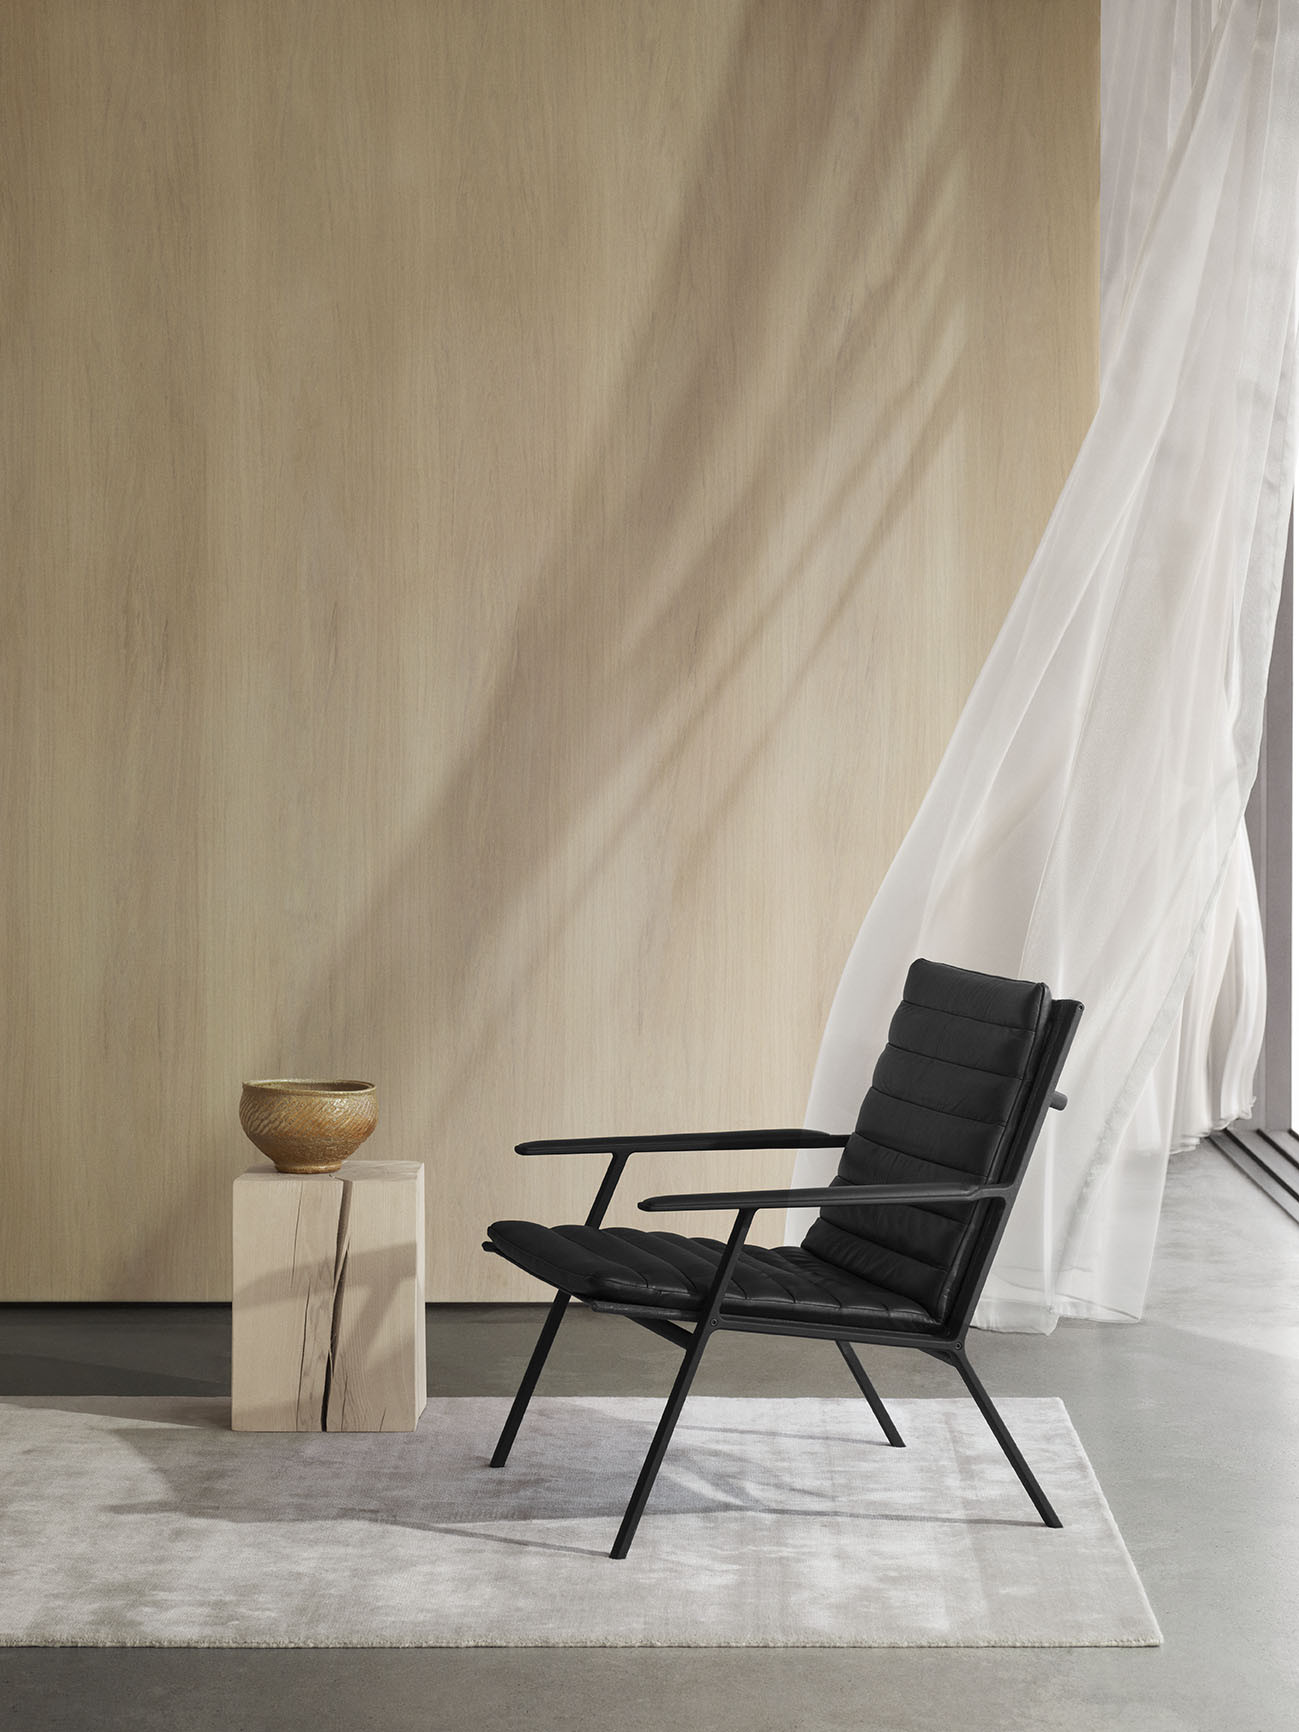 vipp Shelter Lounge Chair VIPP456, 45672, 5705953168719